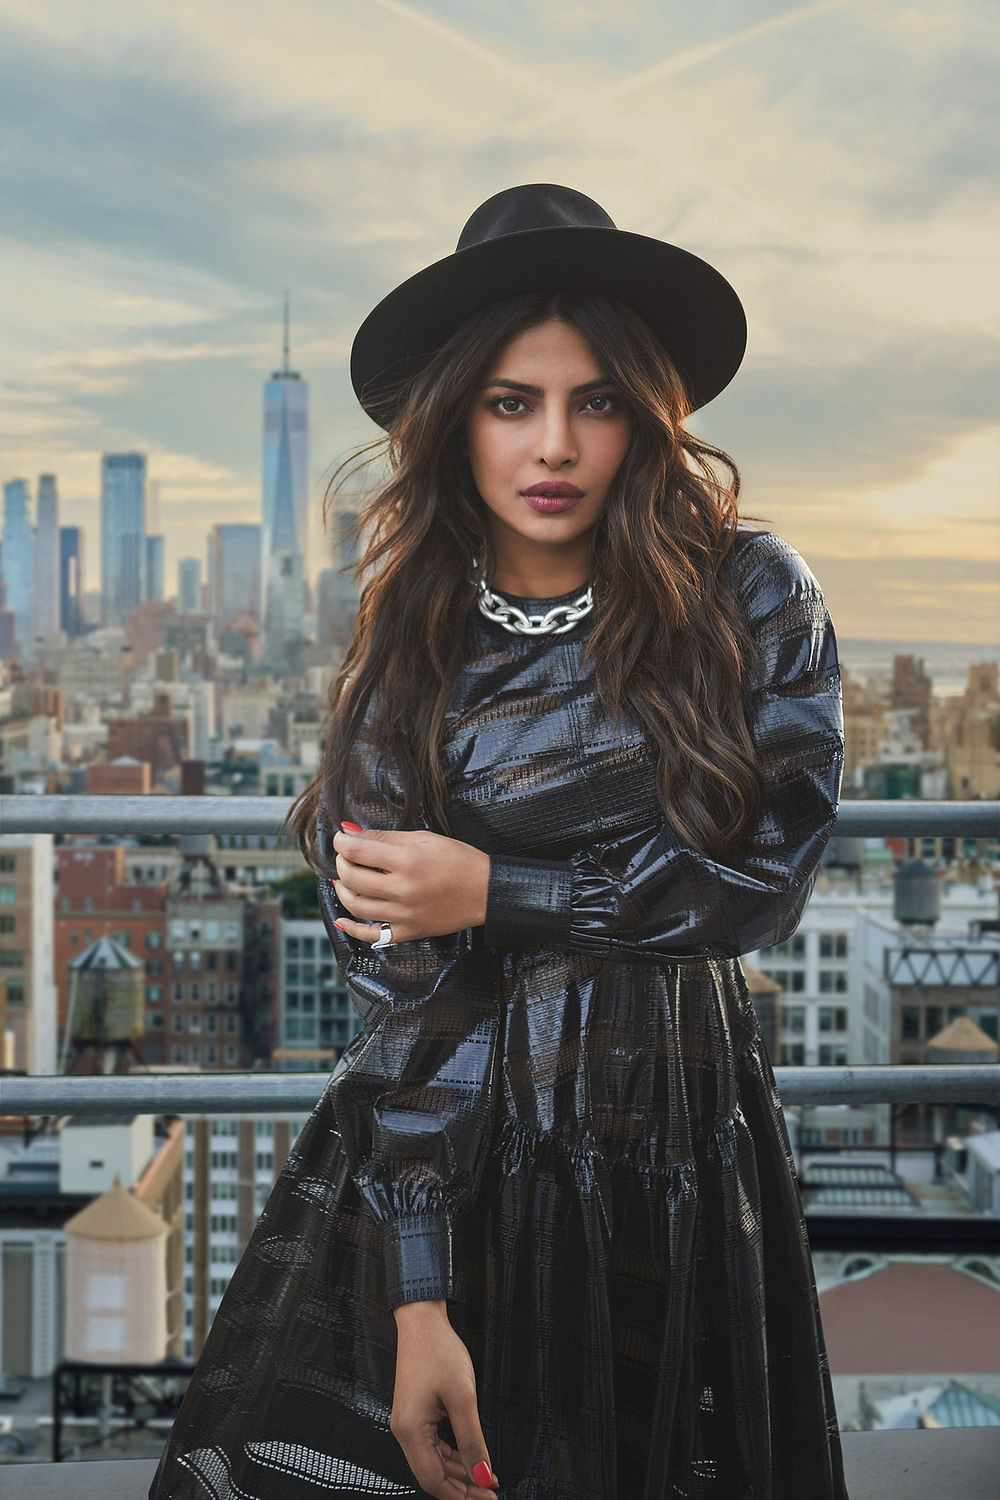 A photograph from Rohan's recent shoot with Priyanka Chopra dressed in a leather ensemble on the roof of a high-rise featuring the skyline of New York.